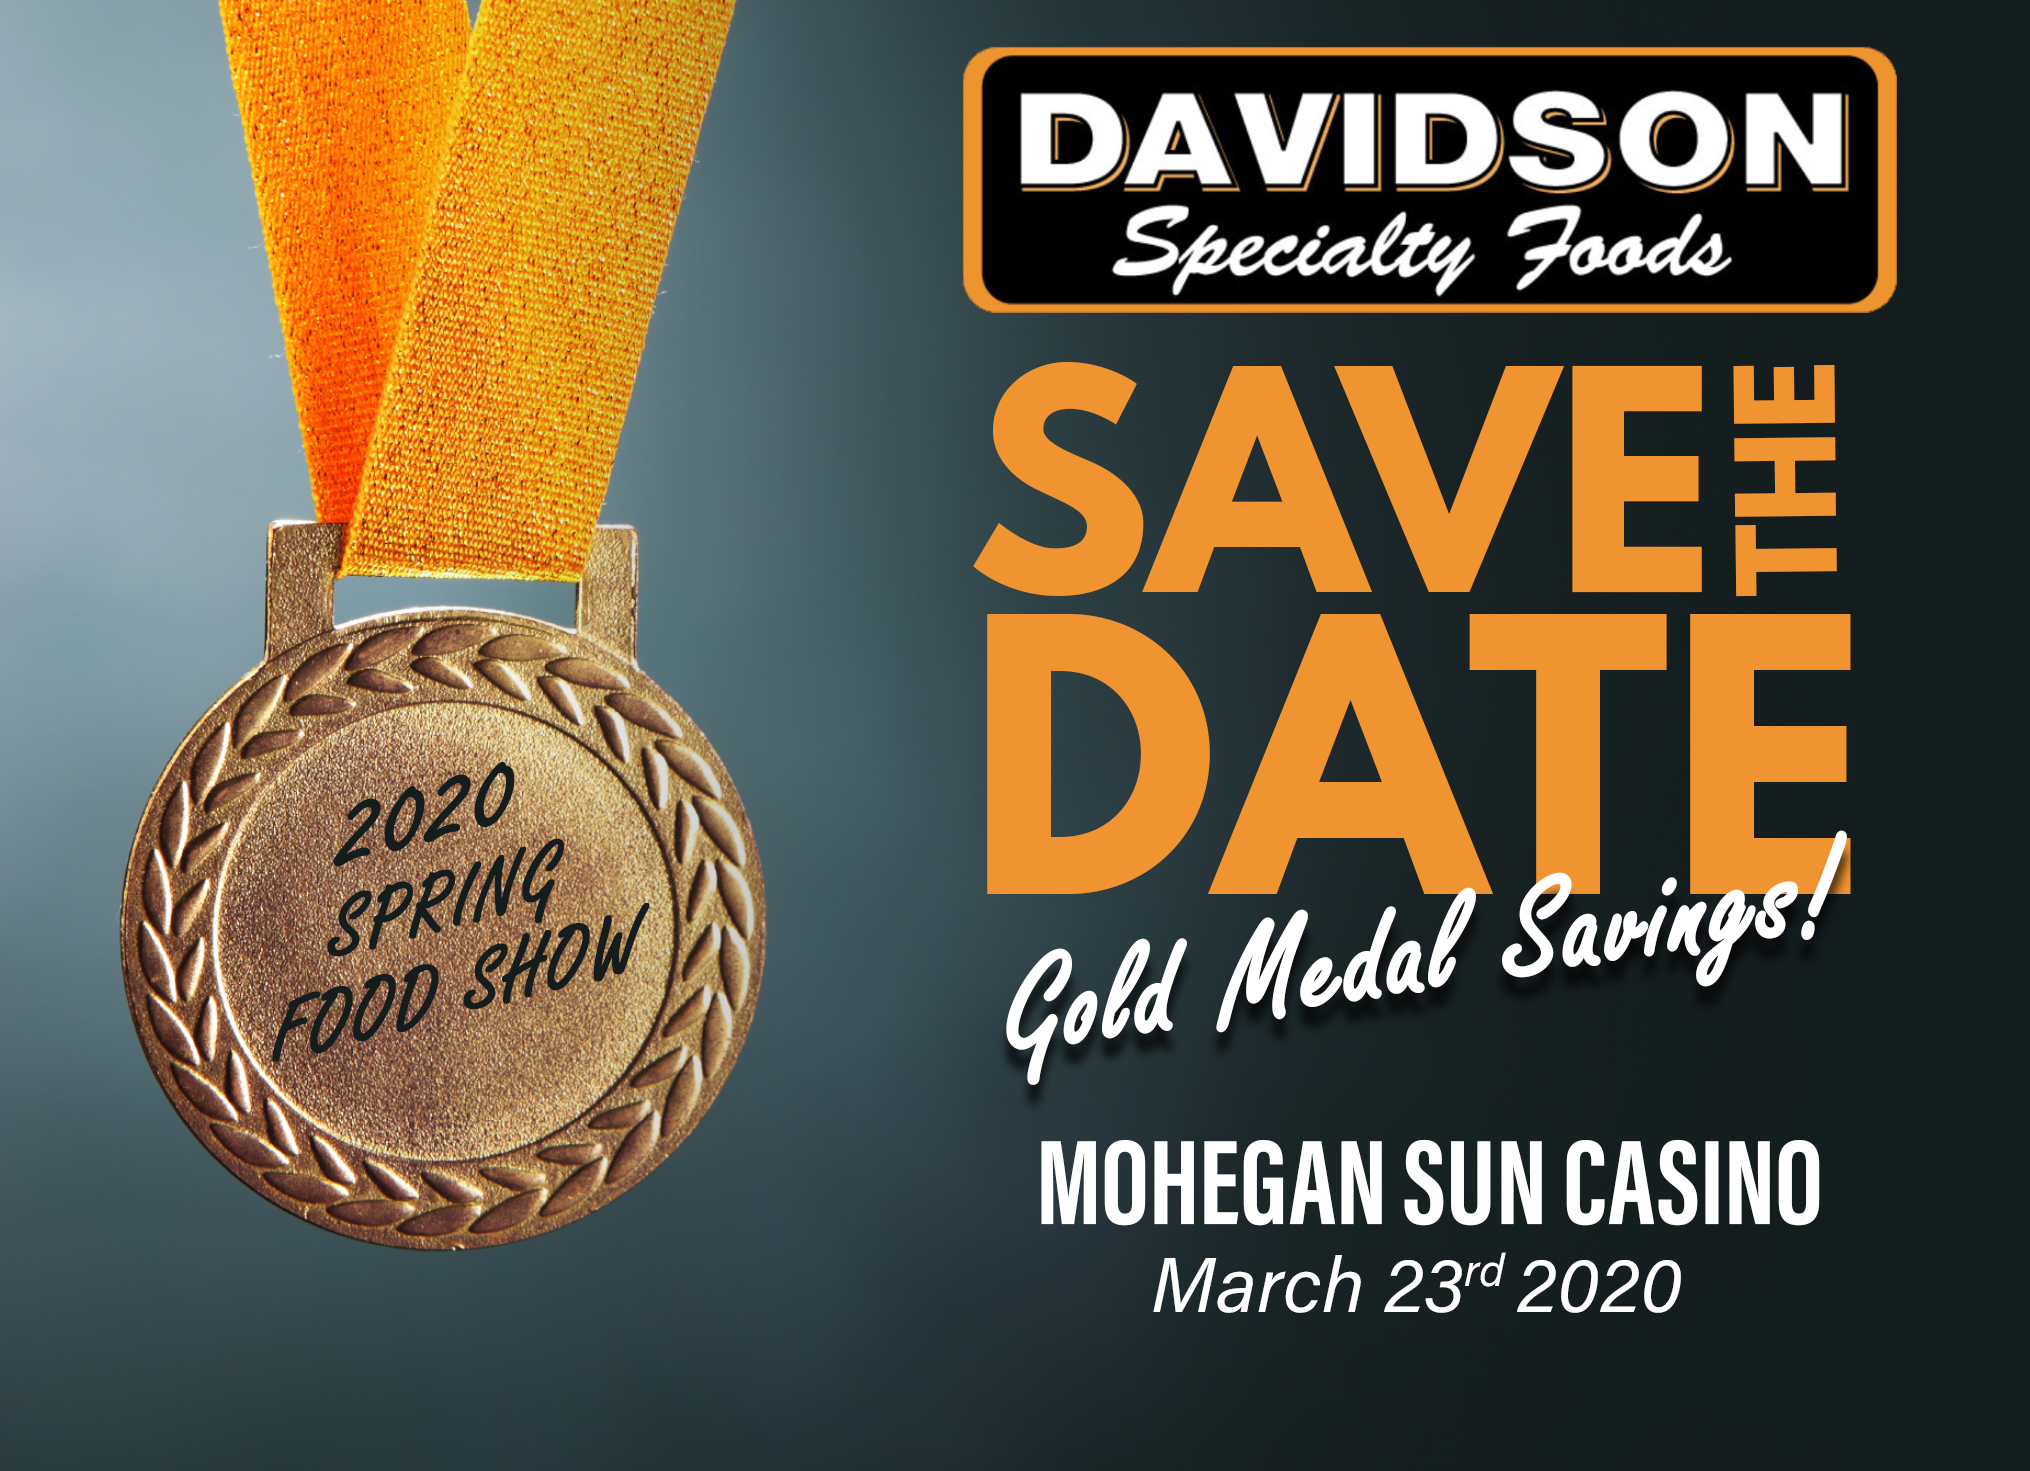 March 2020 Davidson Food Show Save the Date